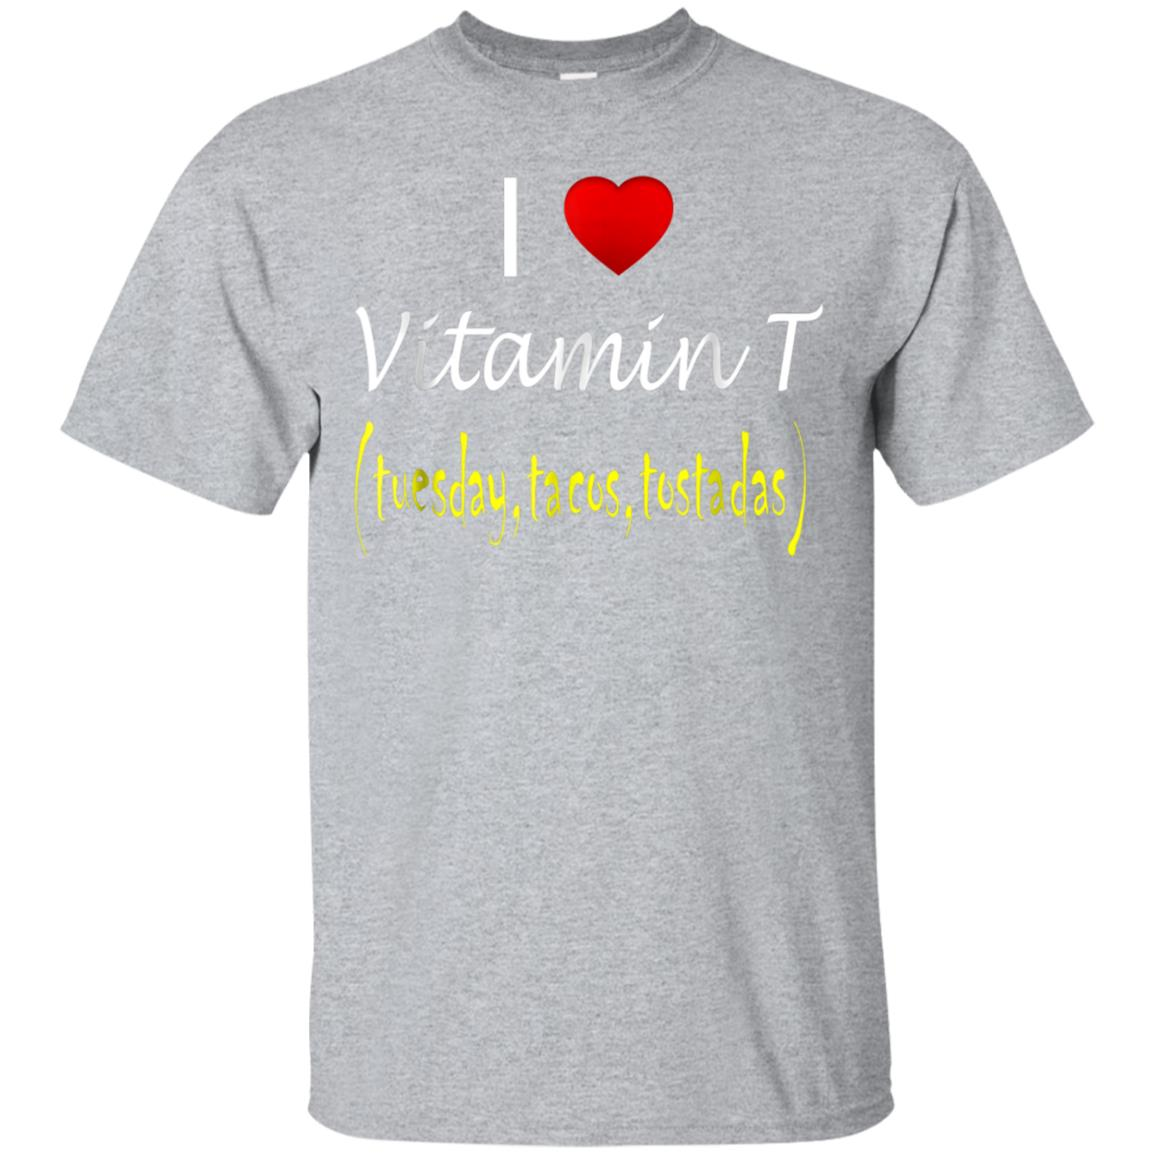 I Love Vitamin T (Tuesday, Tacos Tostads) 99promocode